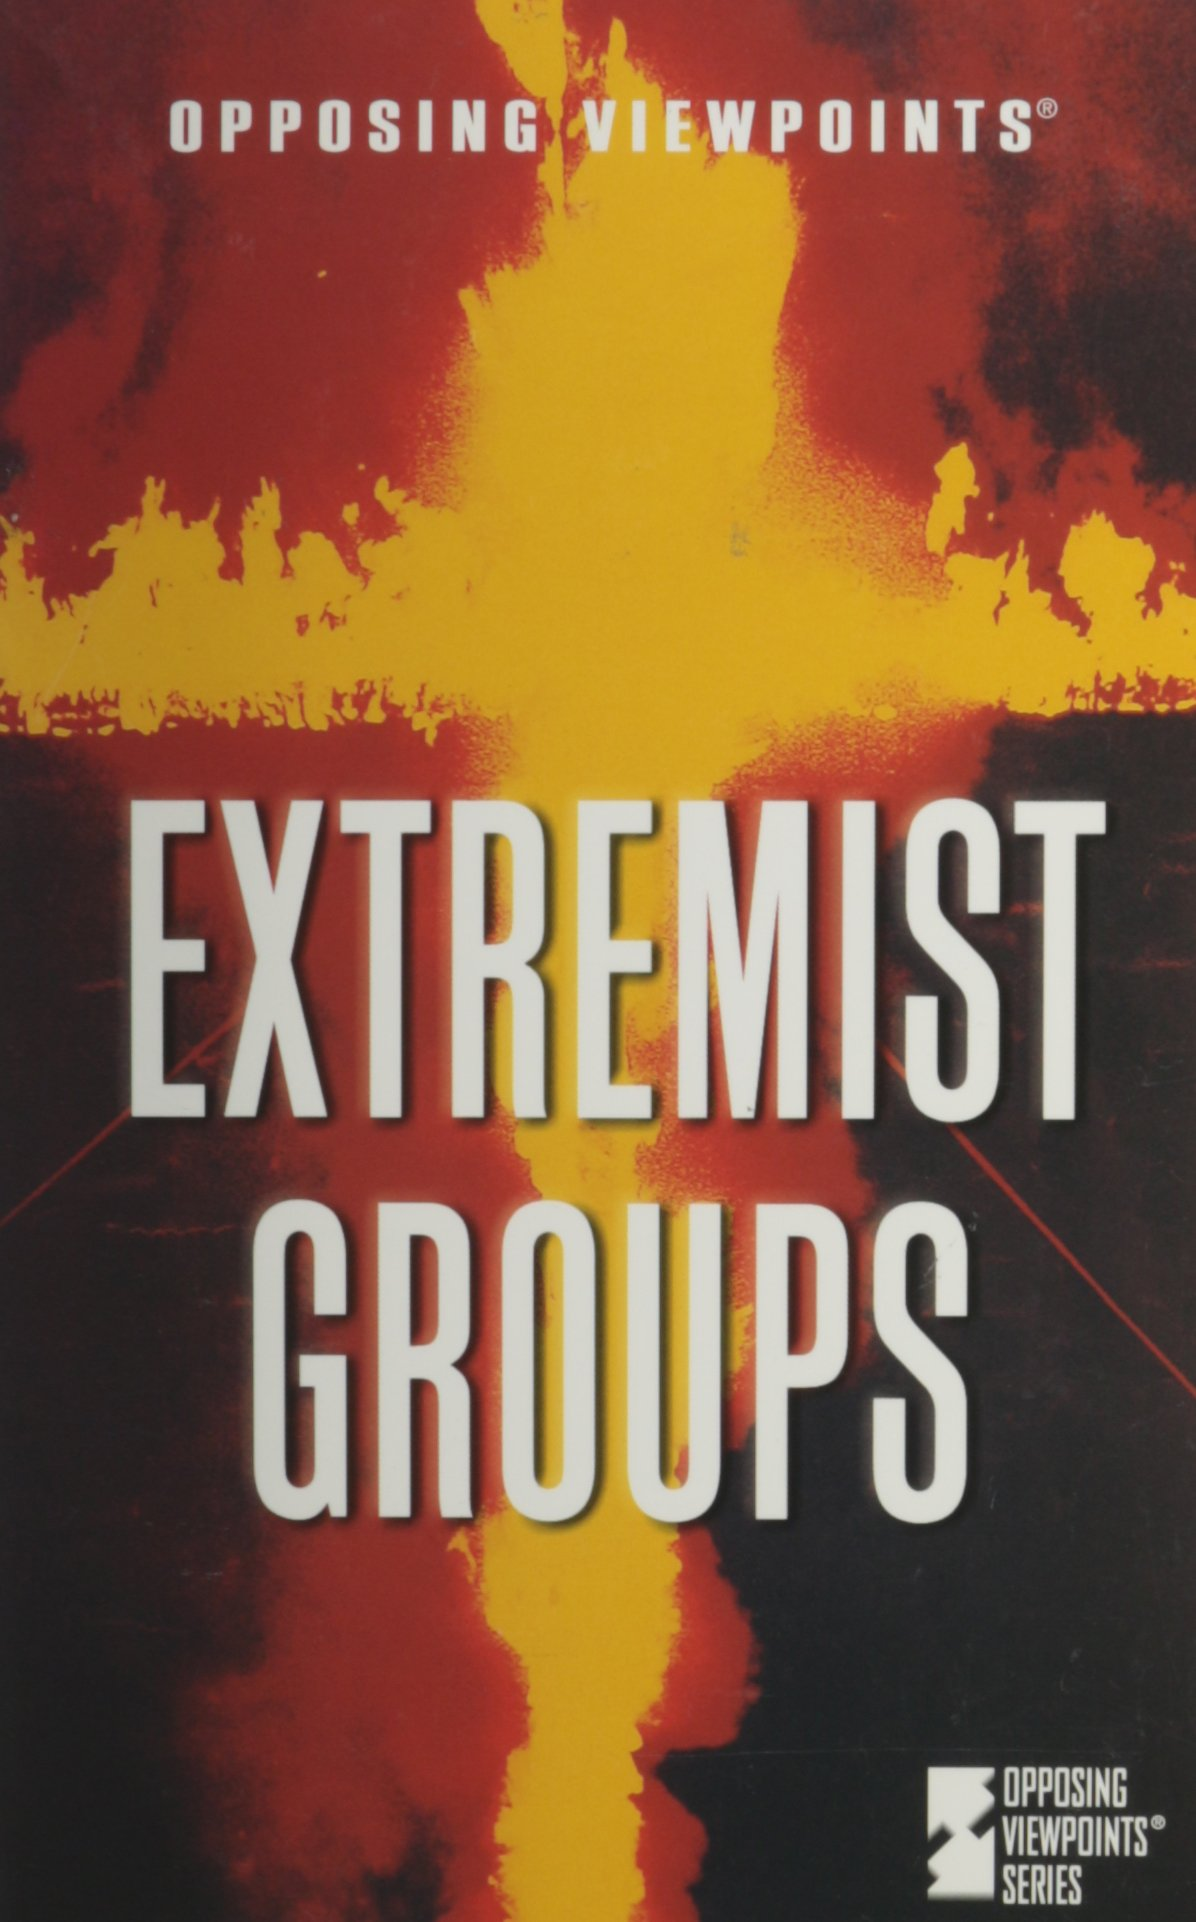 com extremist groups opposing viewpoints tamara l com extremist groups opposing viewpoints tamara l roleff books